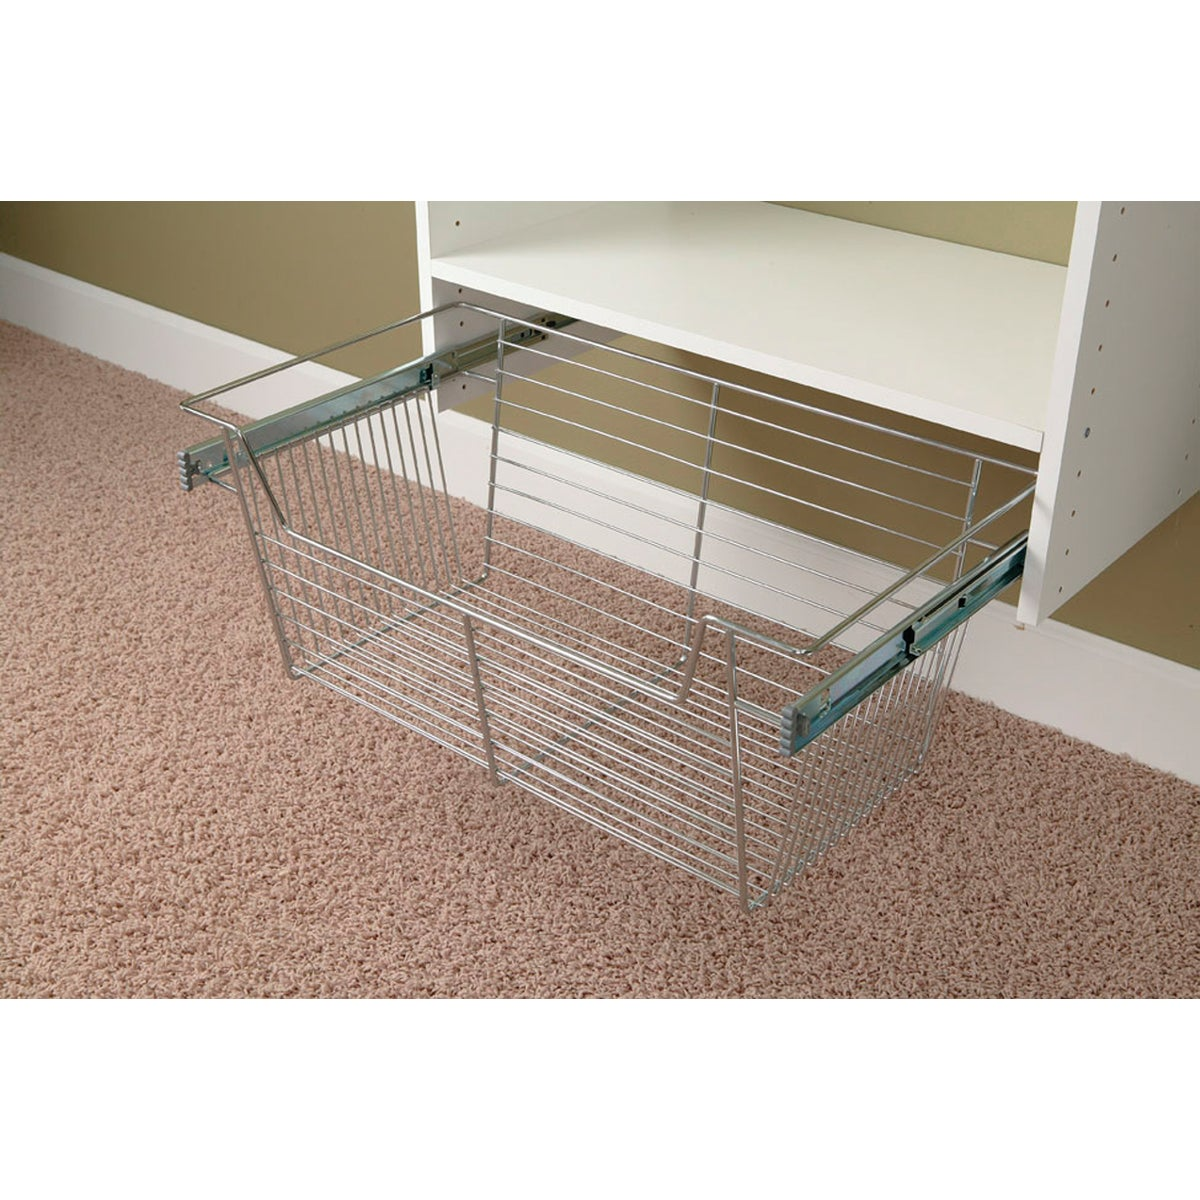 "11"" CHROME WIRE BASKET"